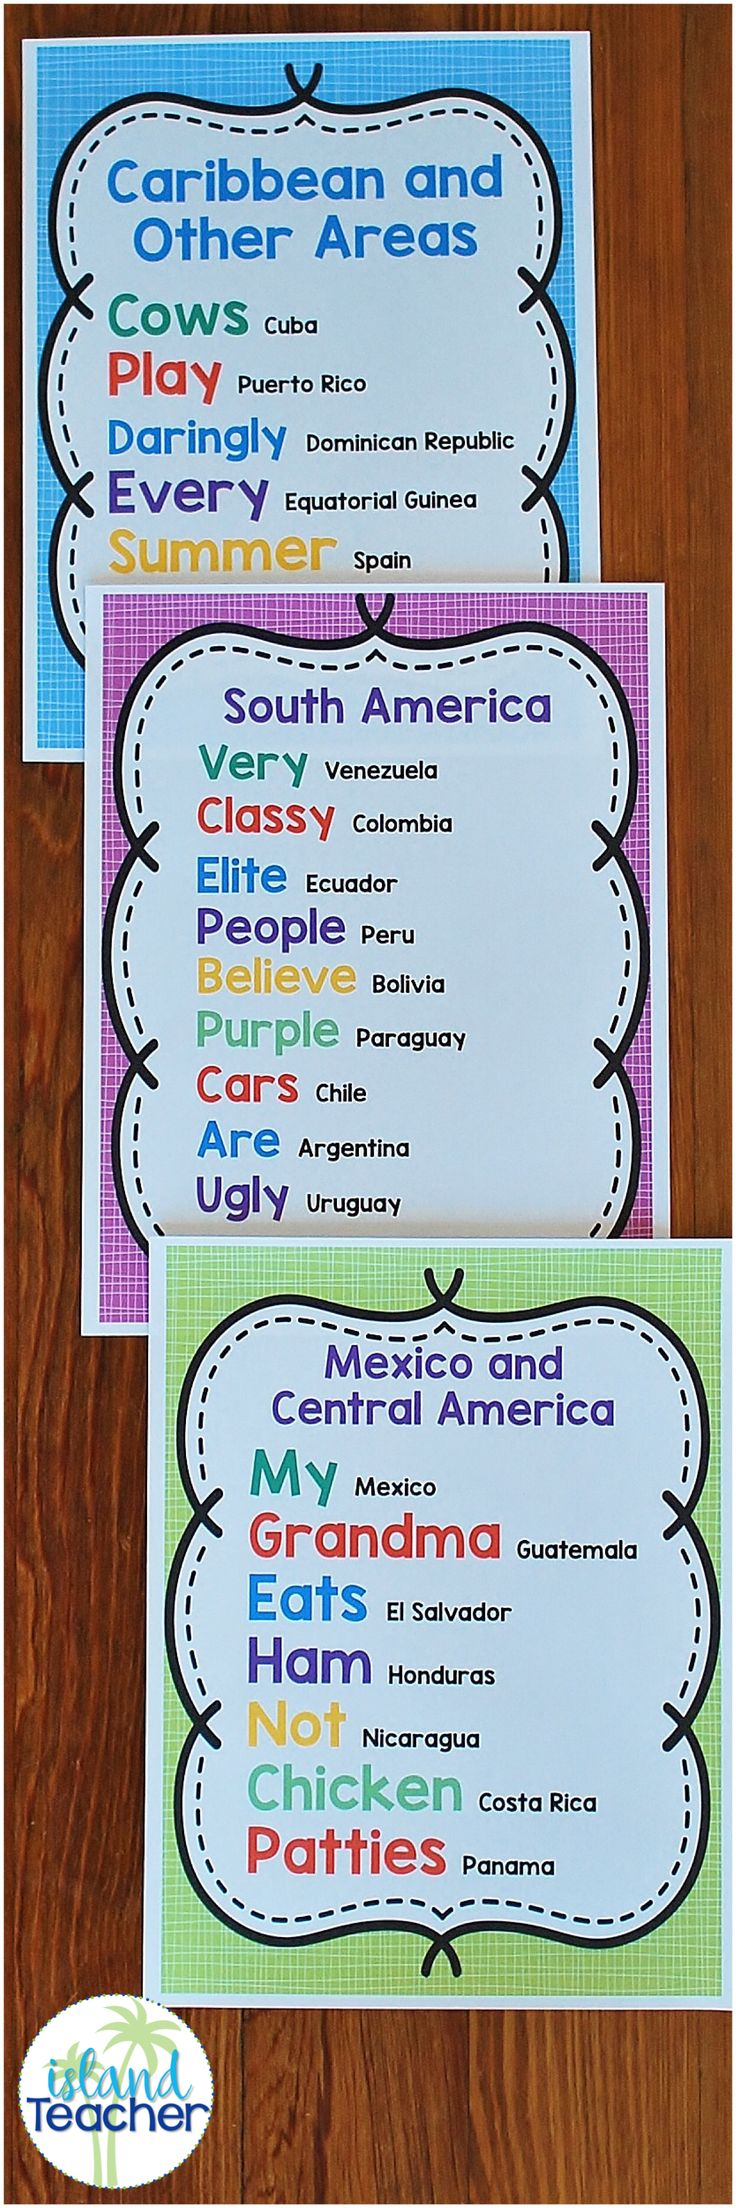 Spanish Speaking Countries Acronym Posters.